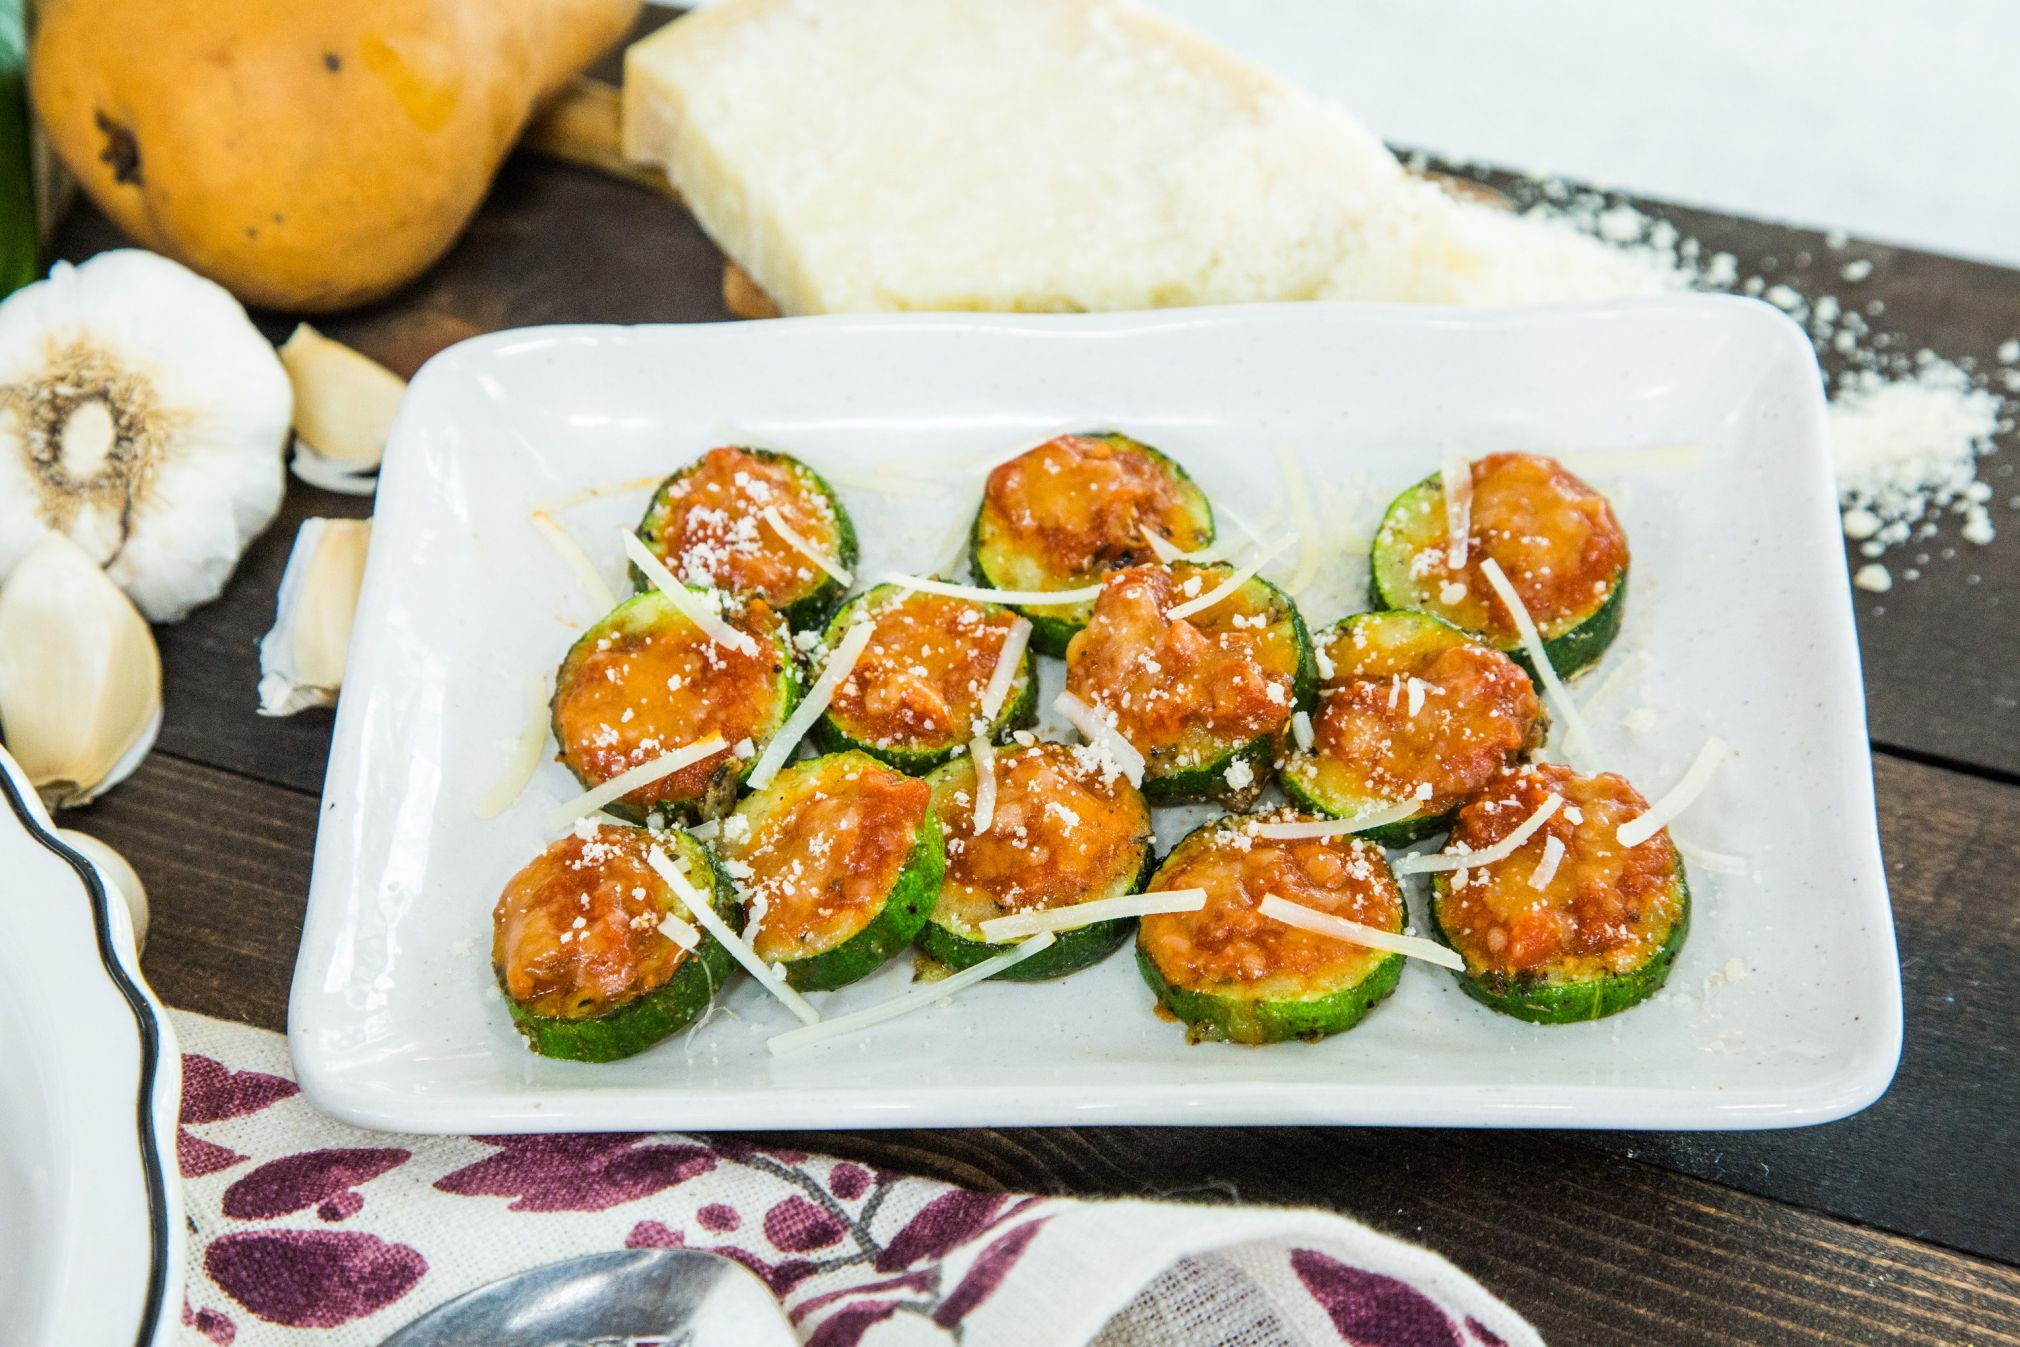 Zucchini bites are delicious healthier snacks to try